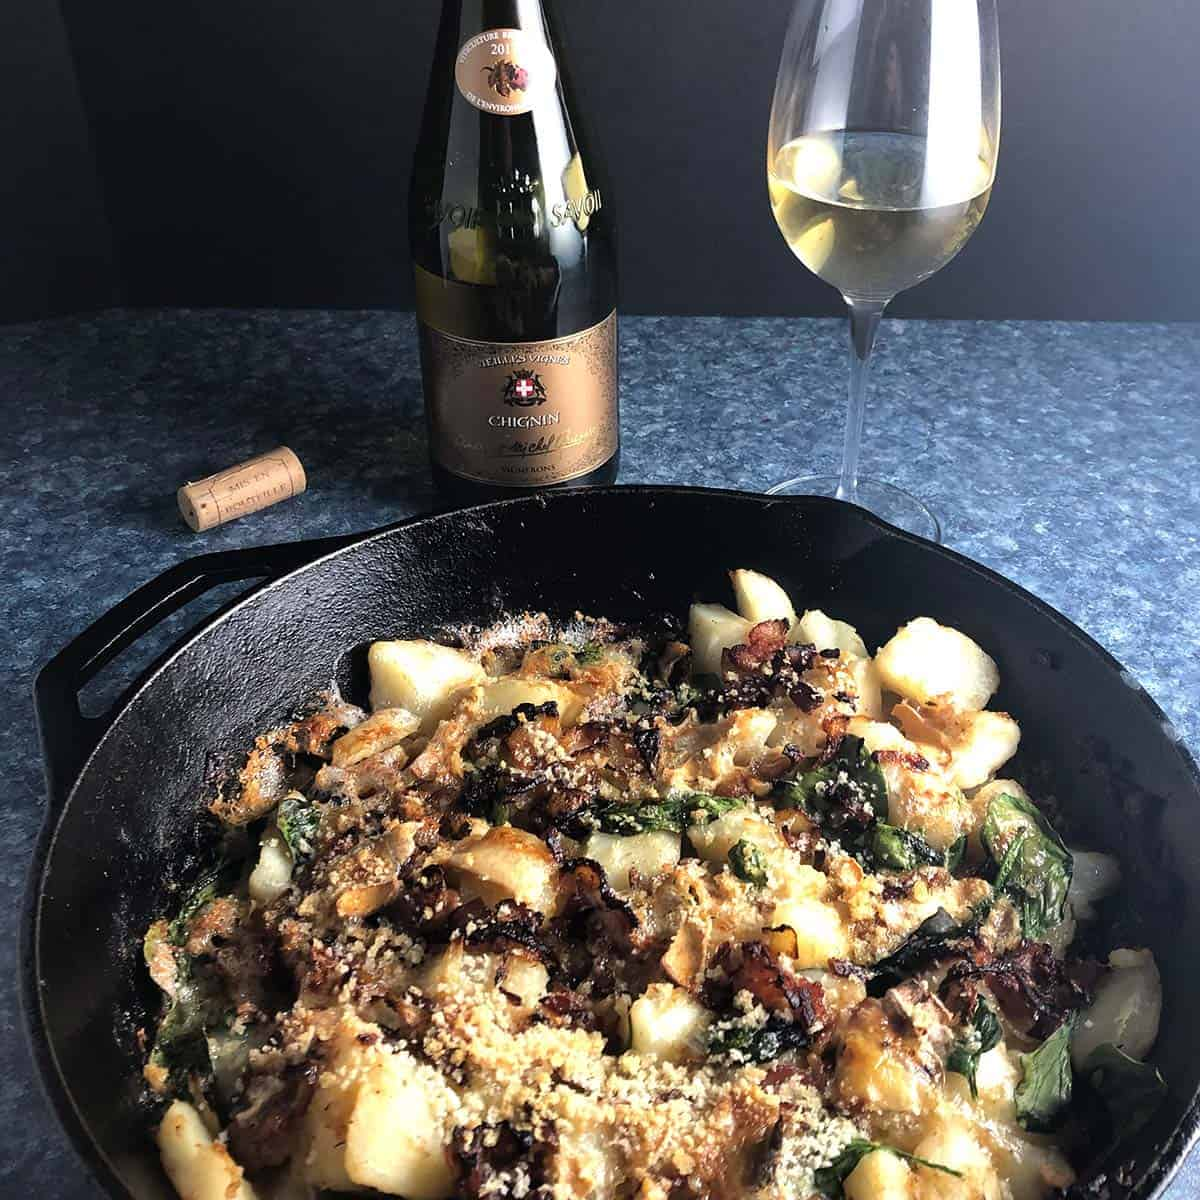 tartiflette in a skillet paired with wine.